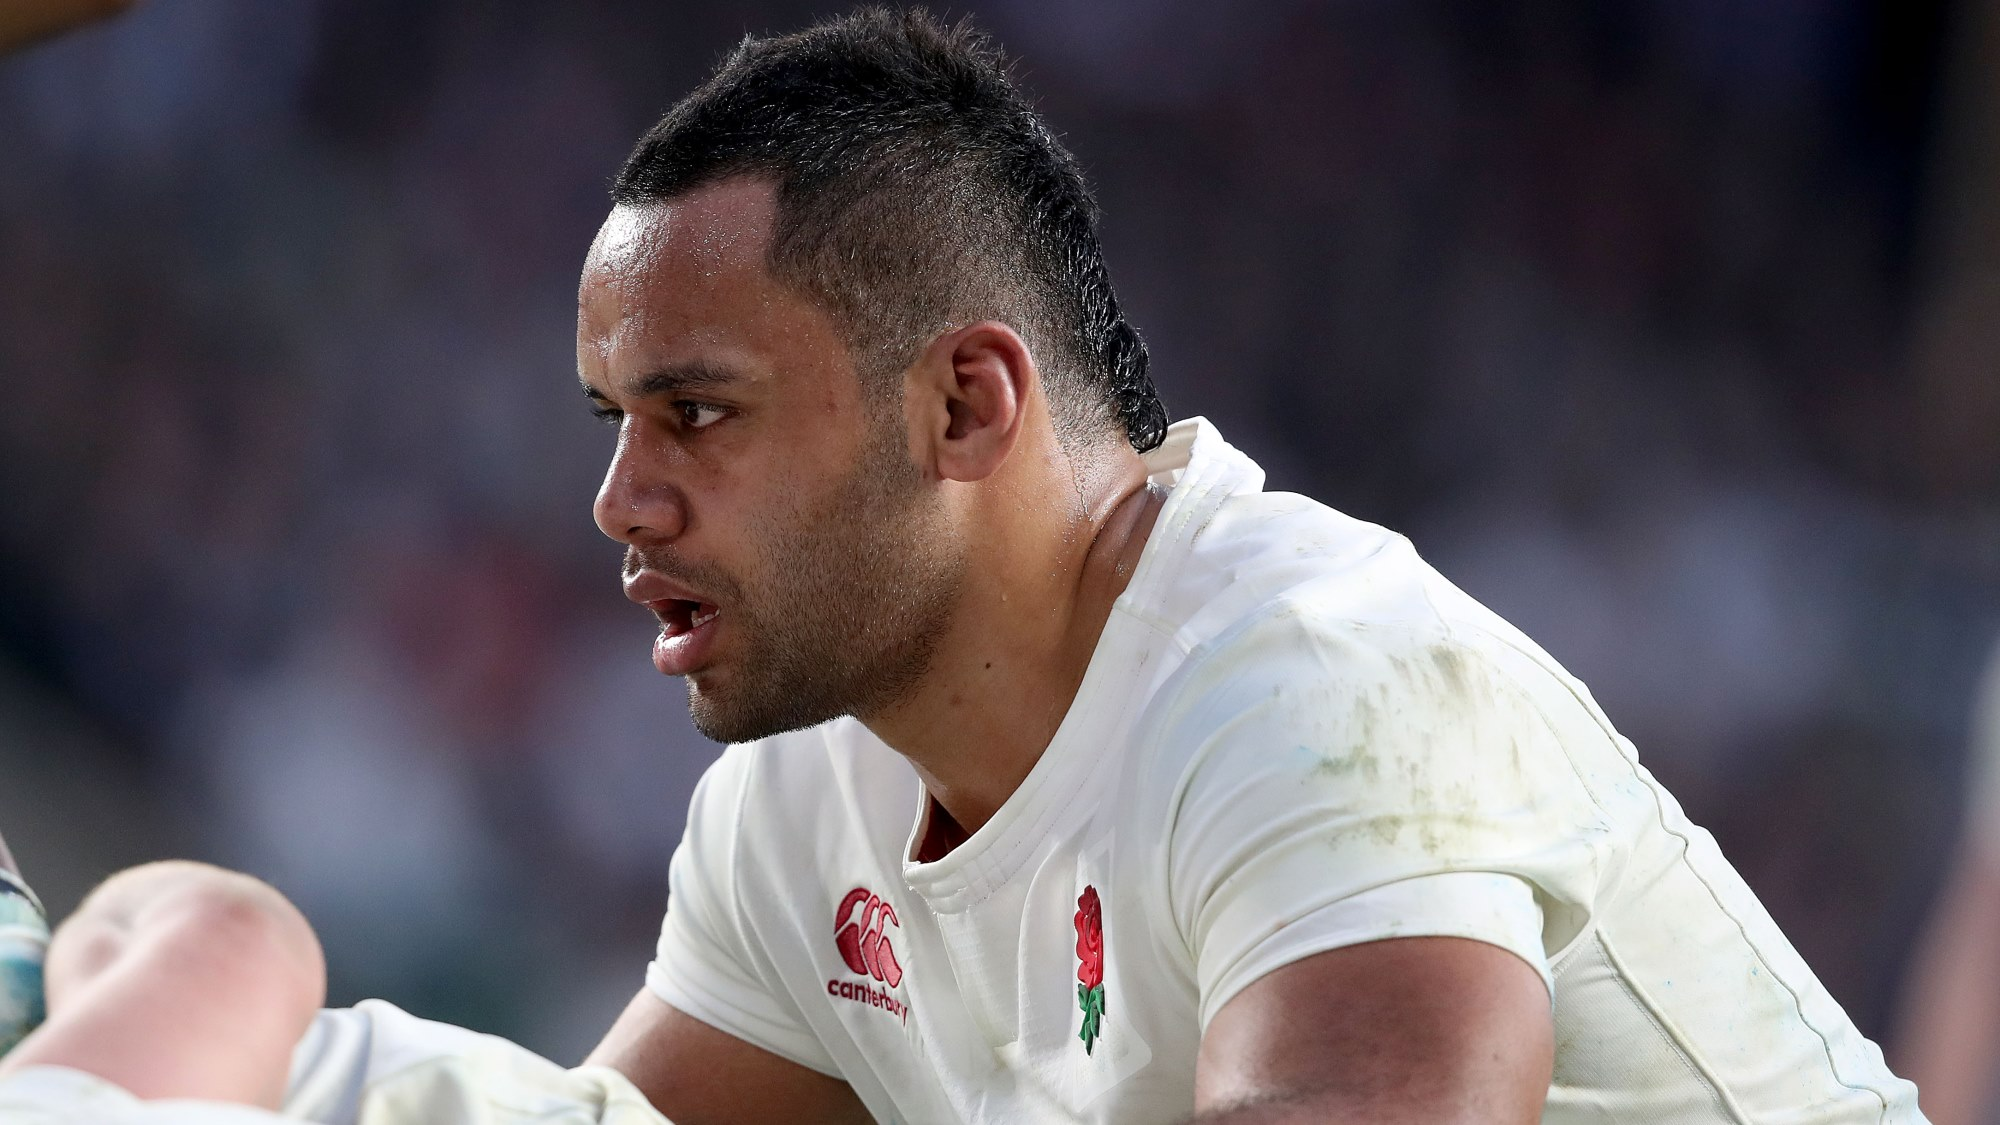 Vunipola looking sharp ahead of Guinness Six Nations